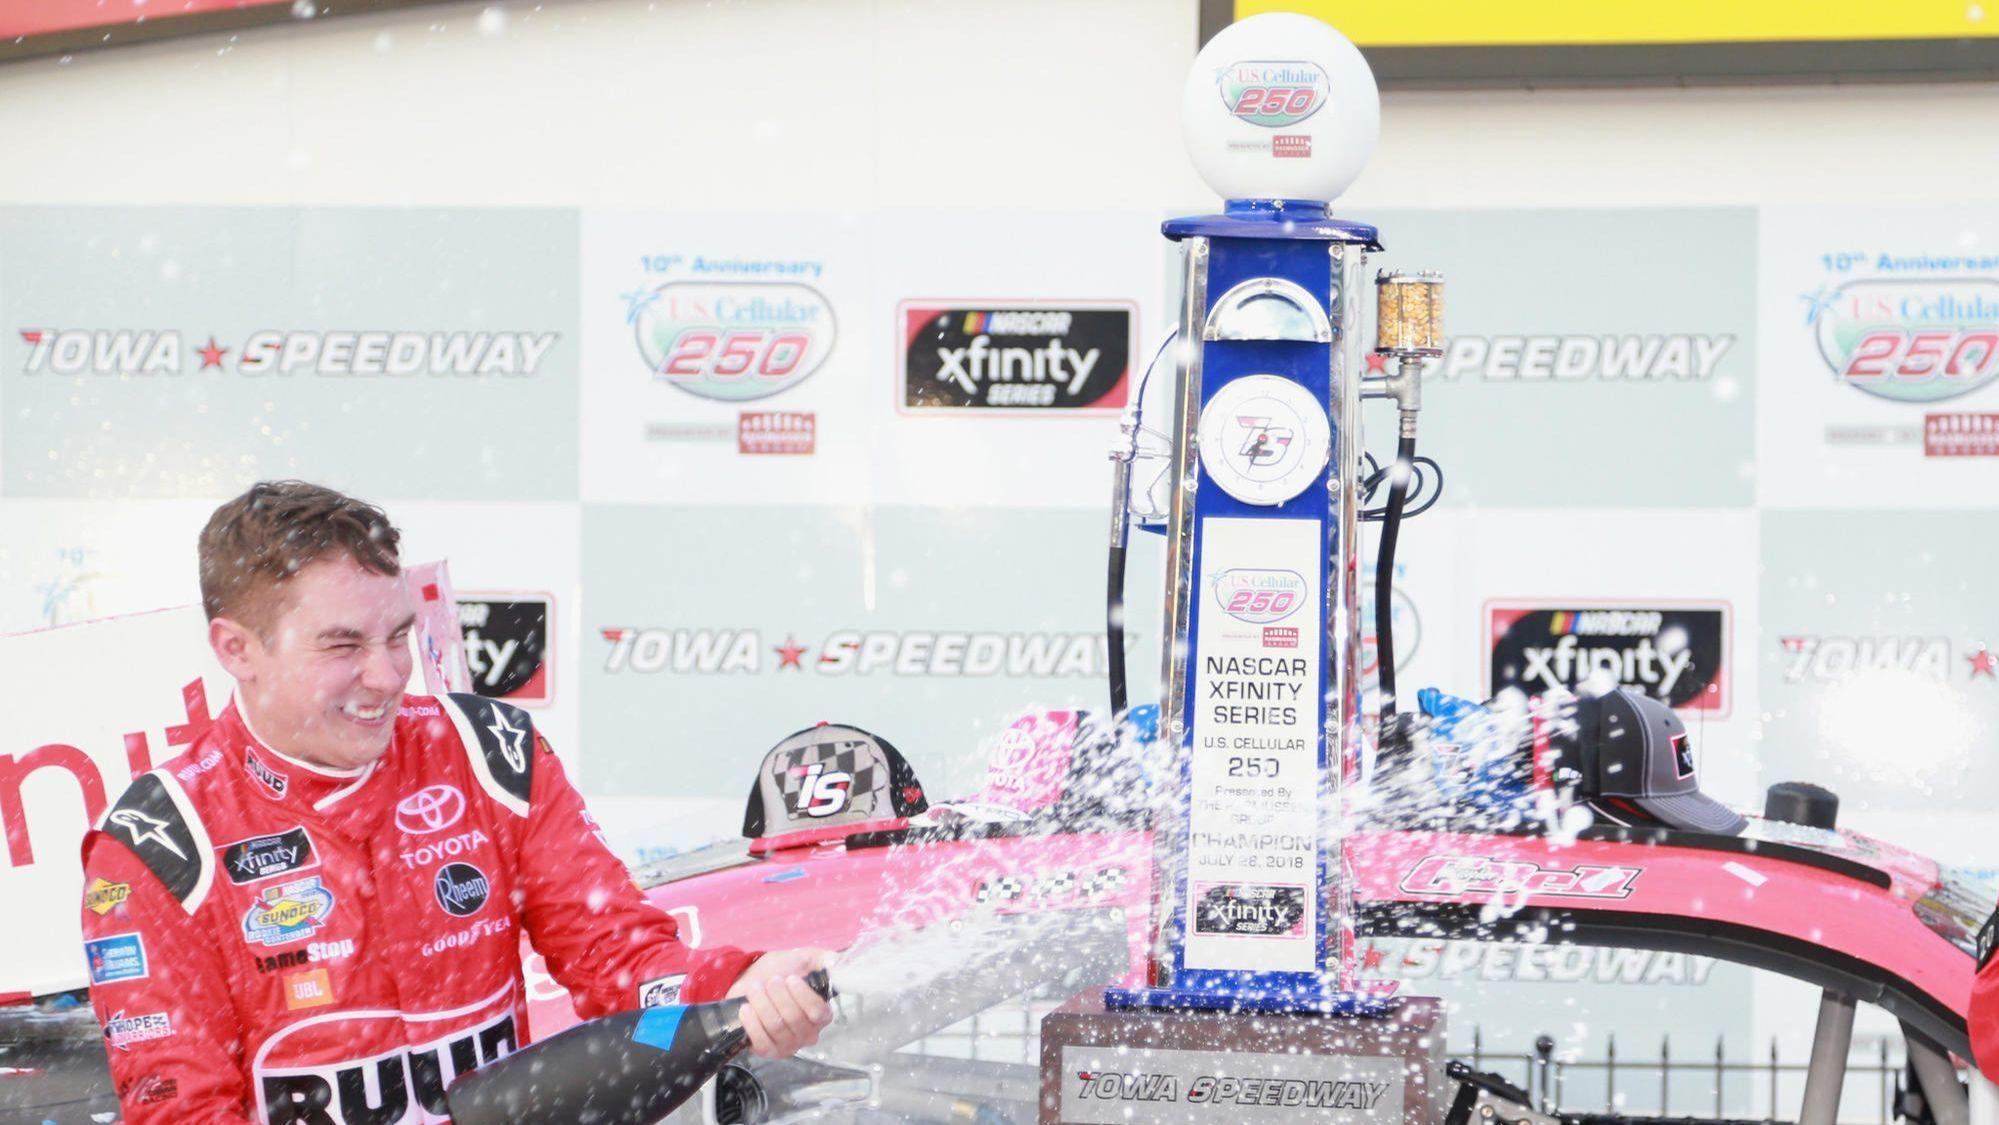 Motors: Christopher Bell races third straight NASCAR Xfinity victory